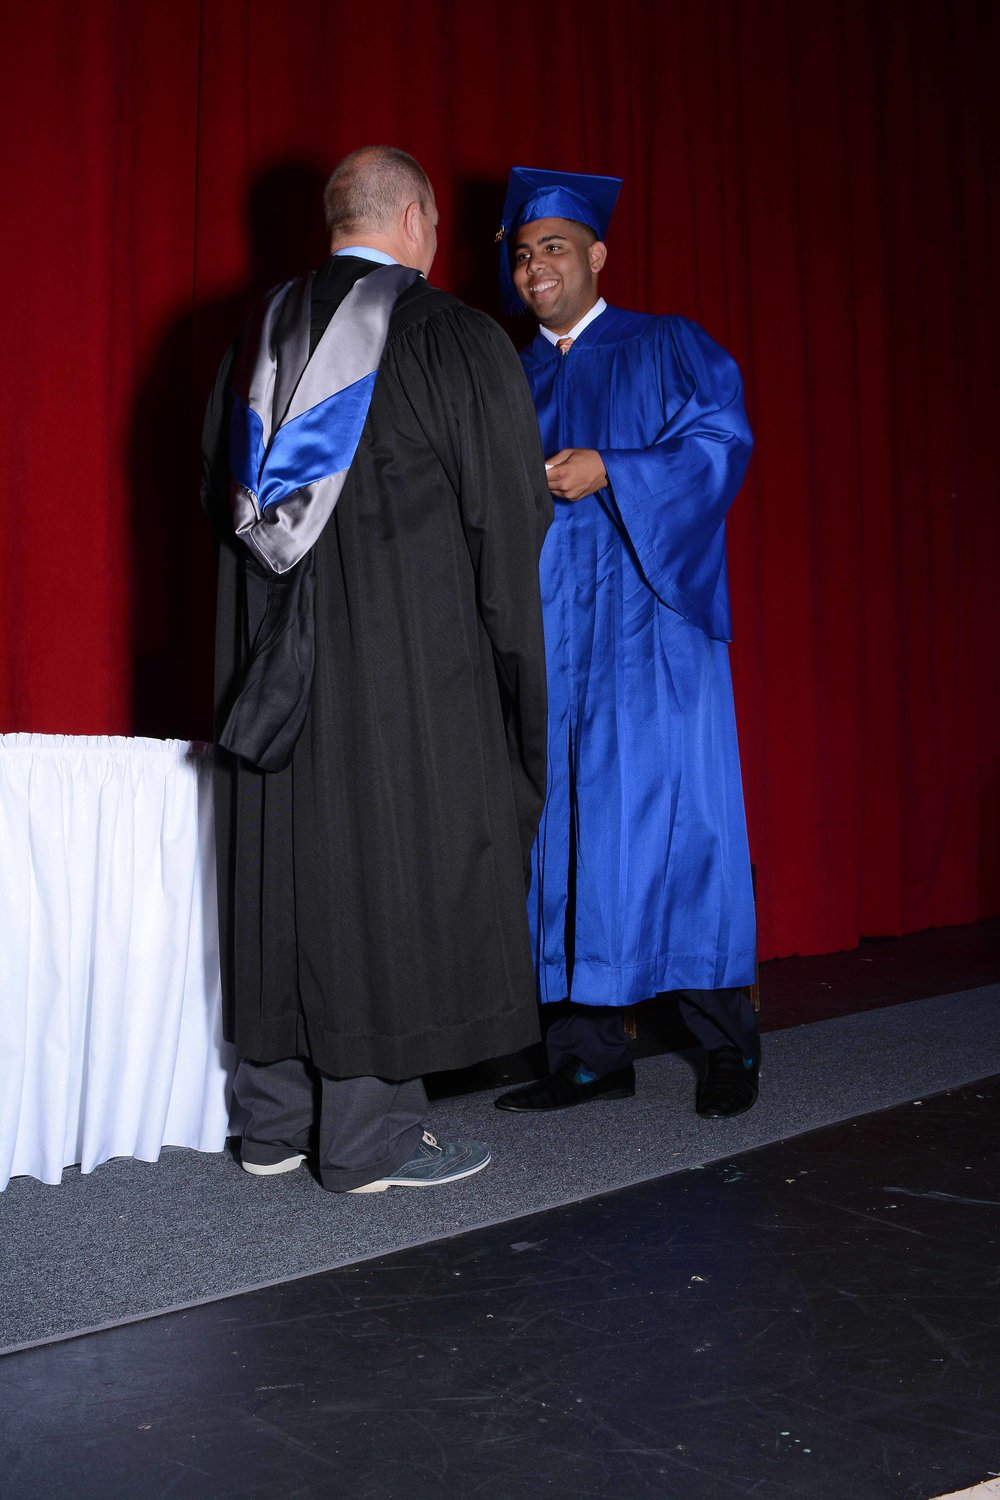 May14 Commencement185.jpg